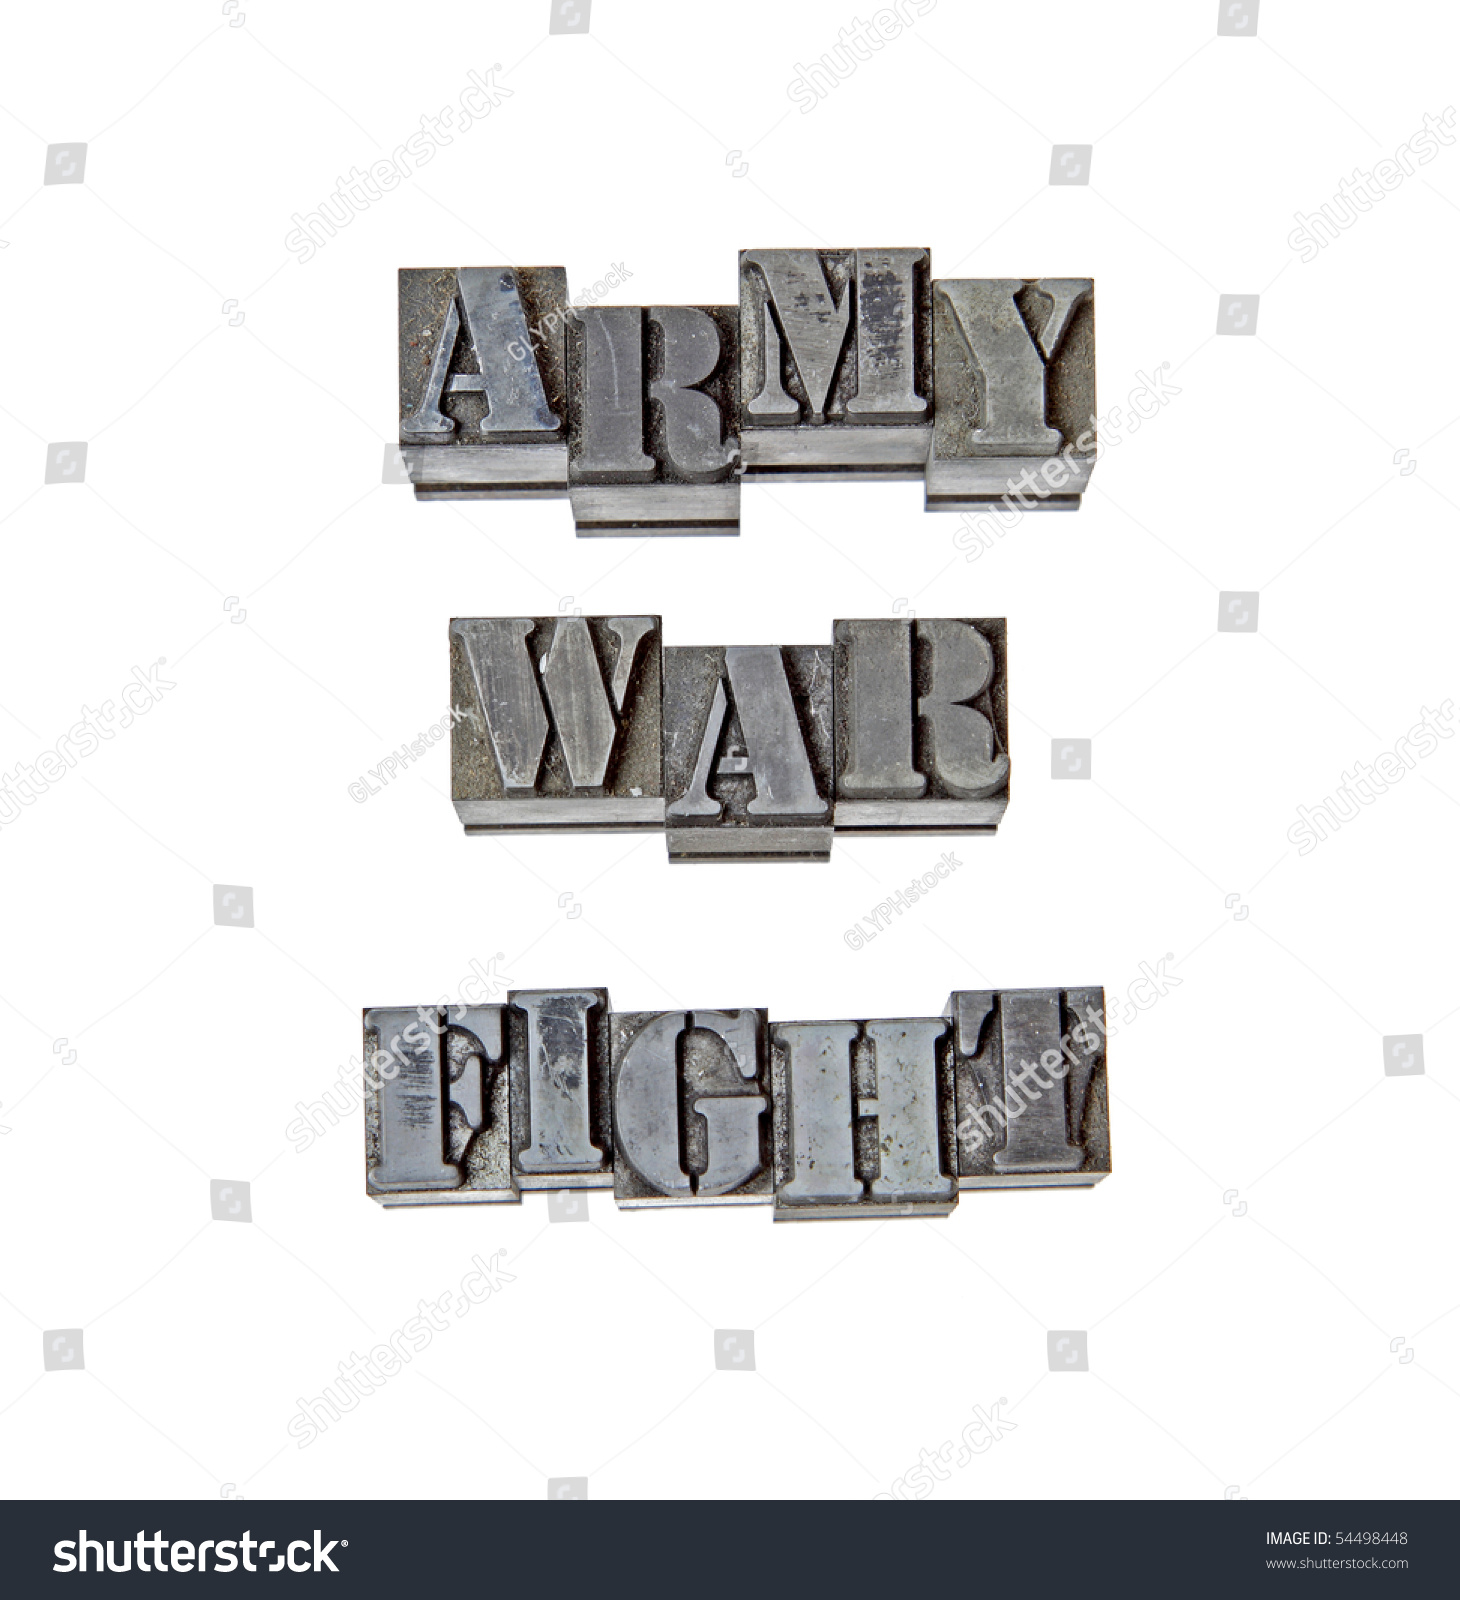 vintage metal letters spelling army war and fight